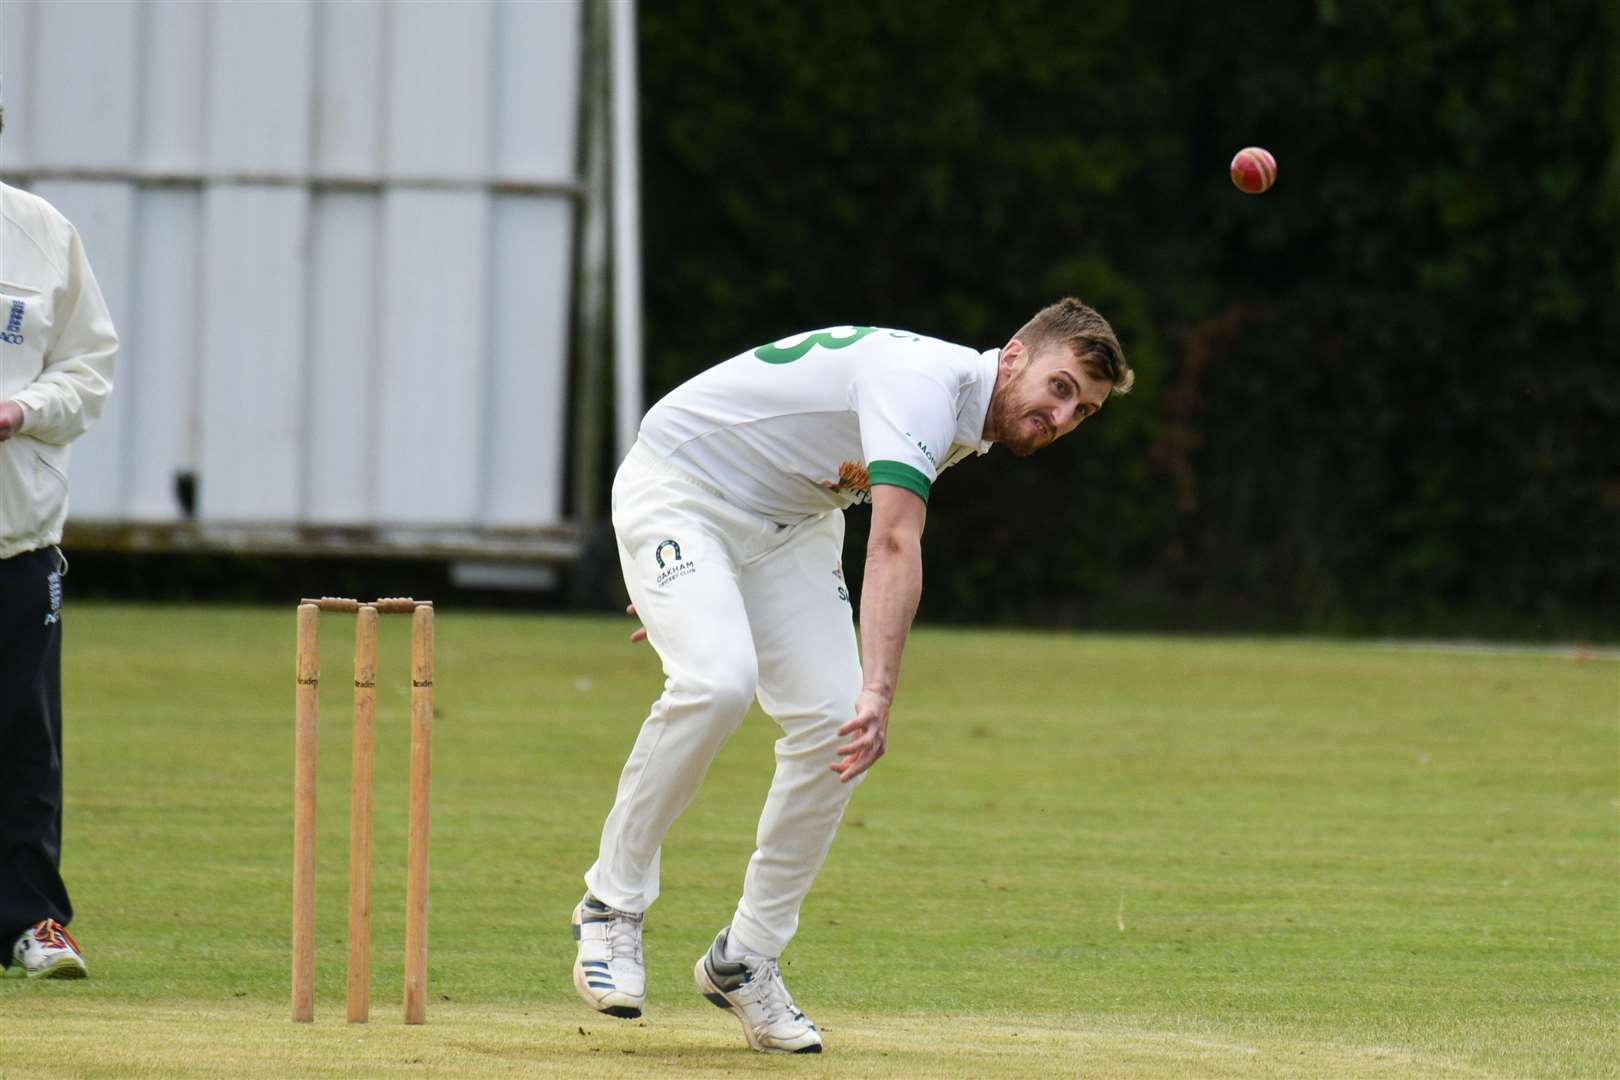 Shaun Morris took six wickets for Oakham's first team. (46597151)